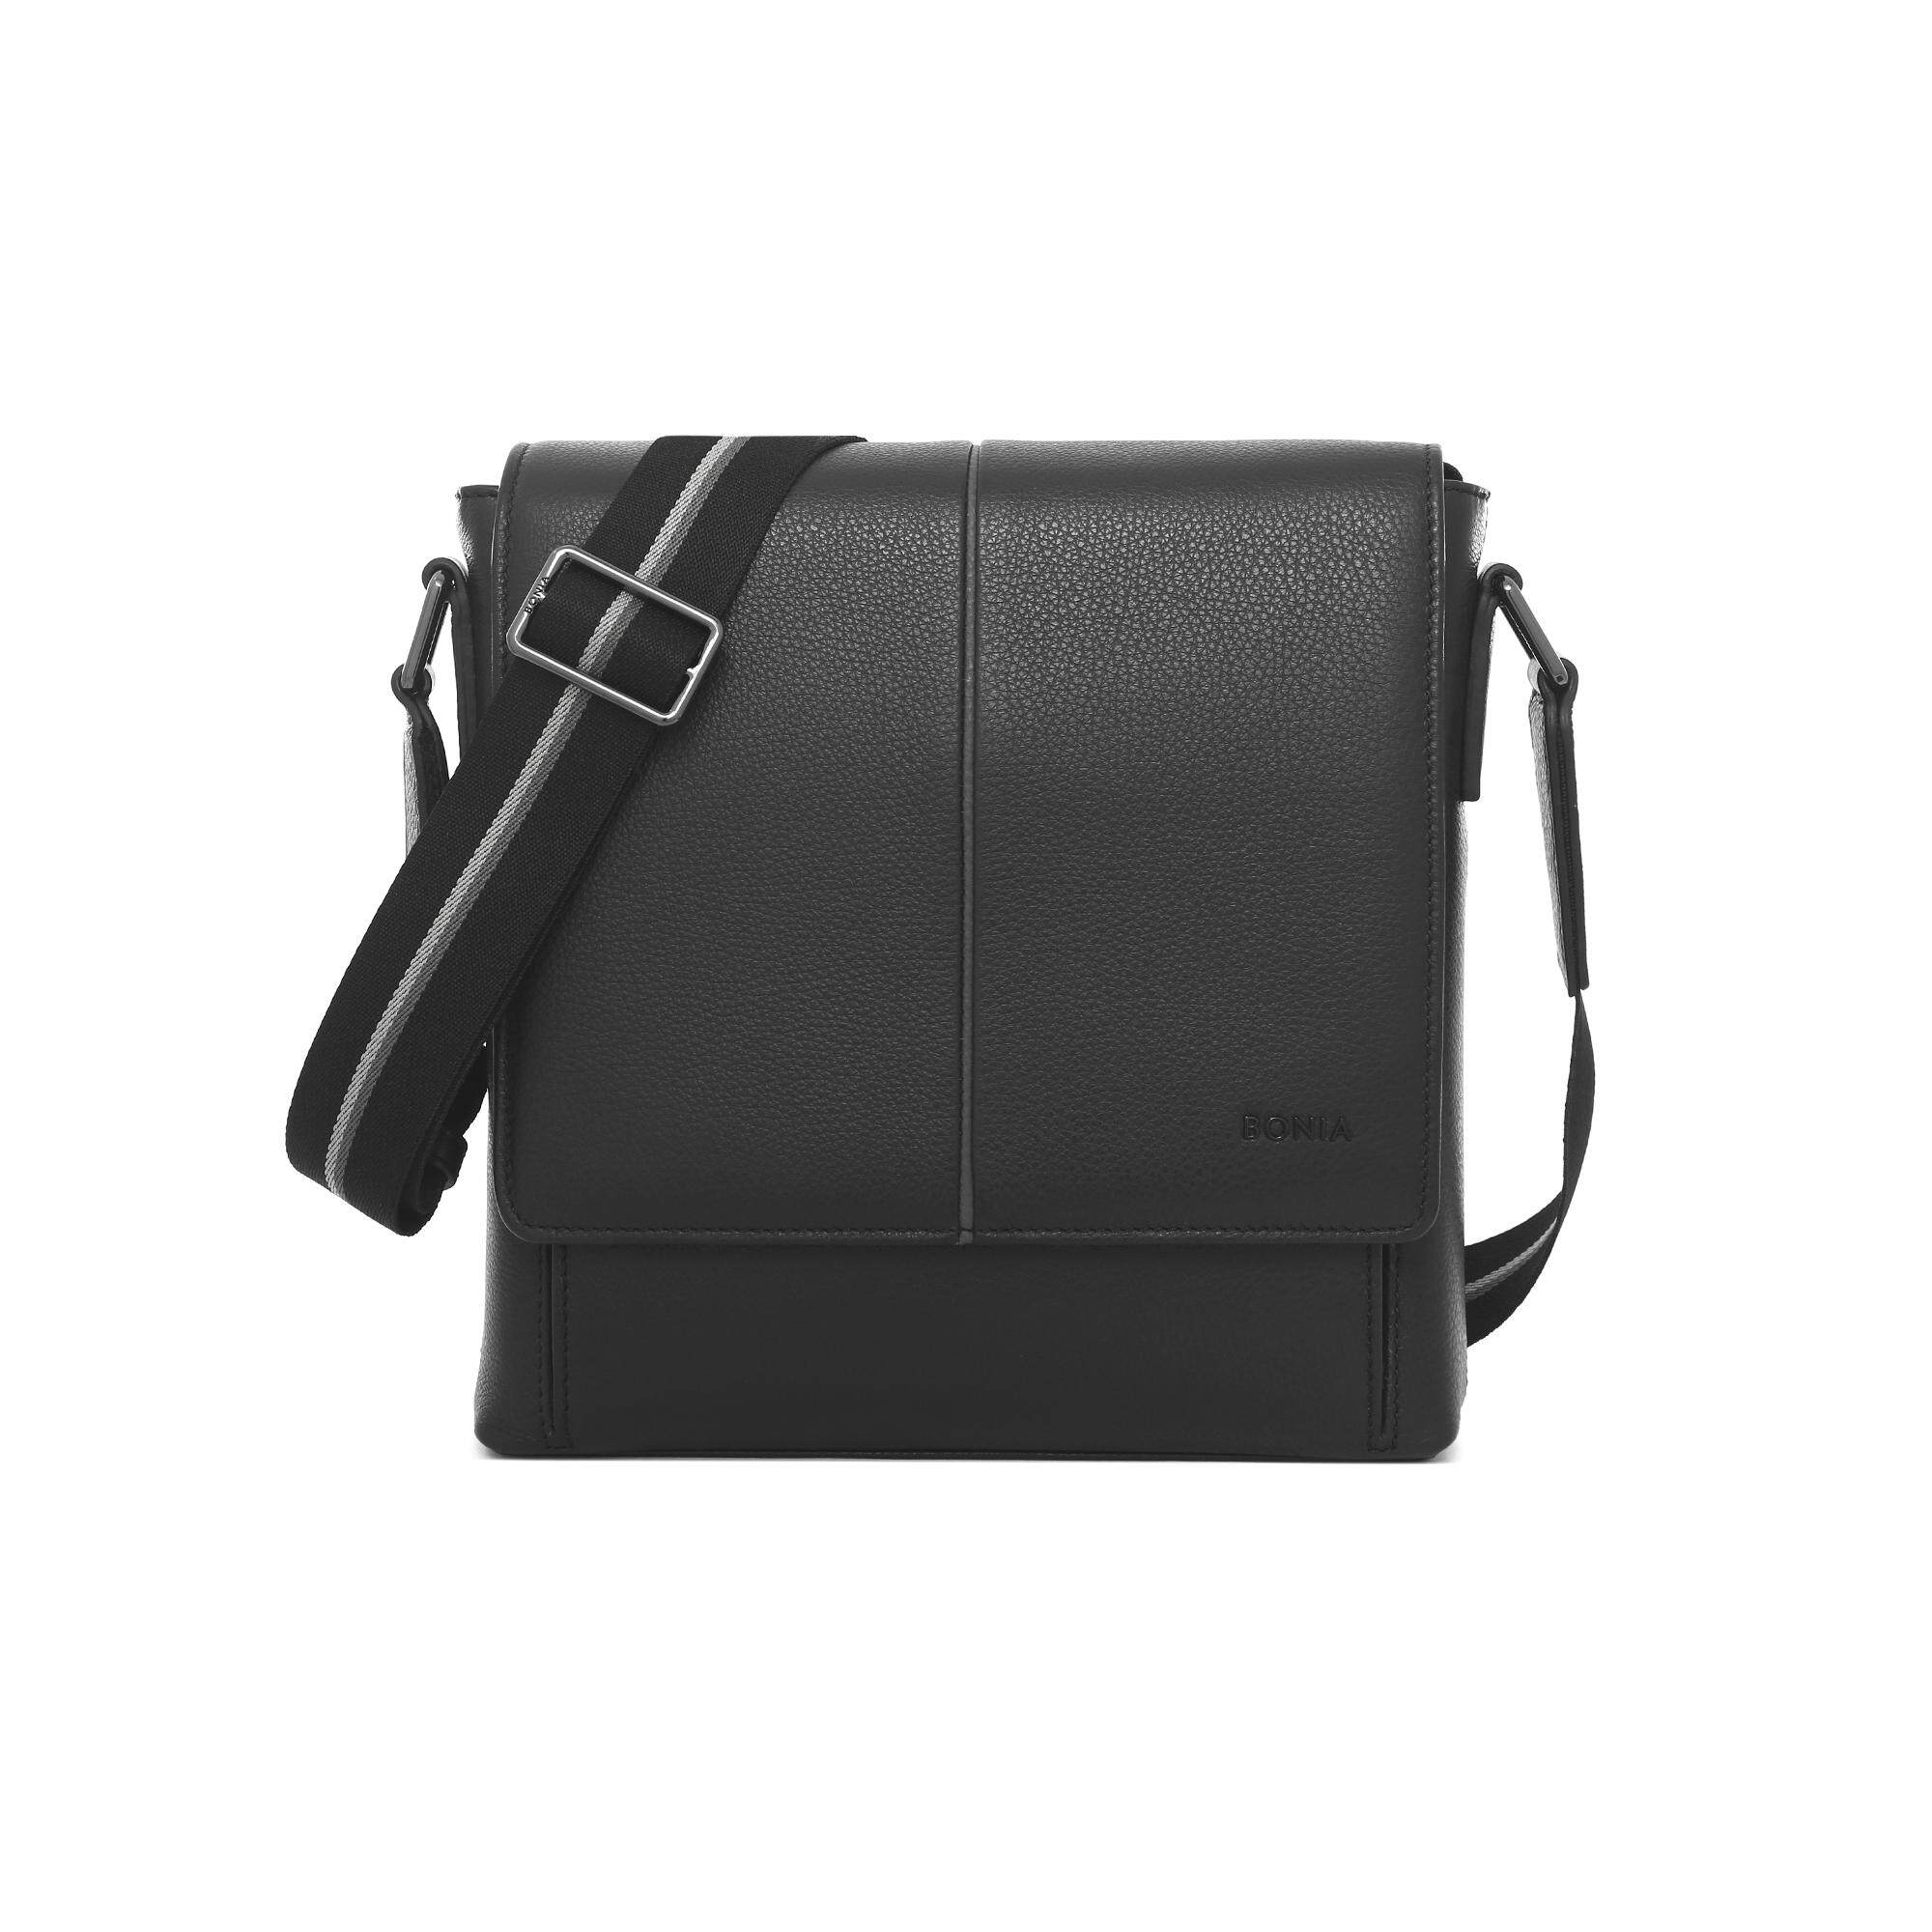 Bonia Black Riley Crossbody Bag M